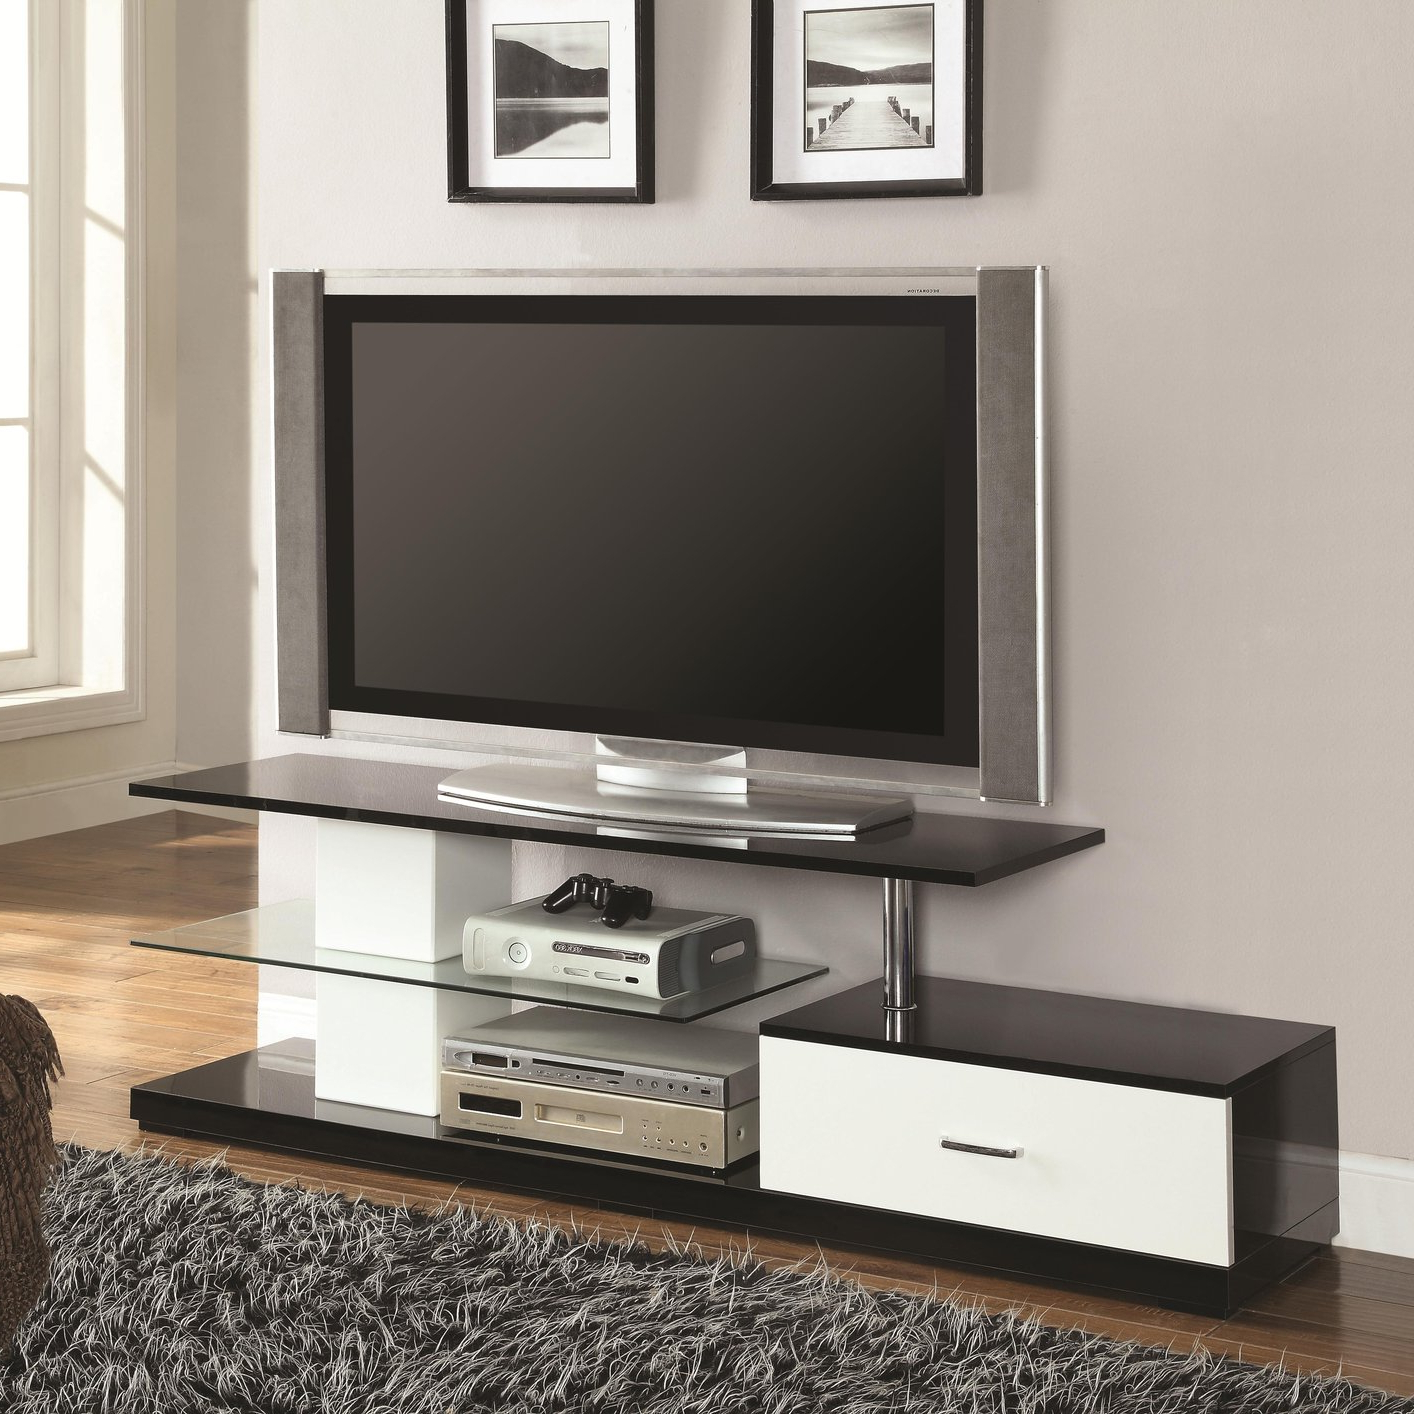 White Metal Tv Stand – Steal A Sofa Furniture Outlet Los Pertaining To Tabletop Tv Stands Base With Black Metal Tv Mount (View 5 of 20)